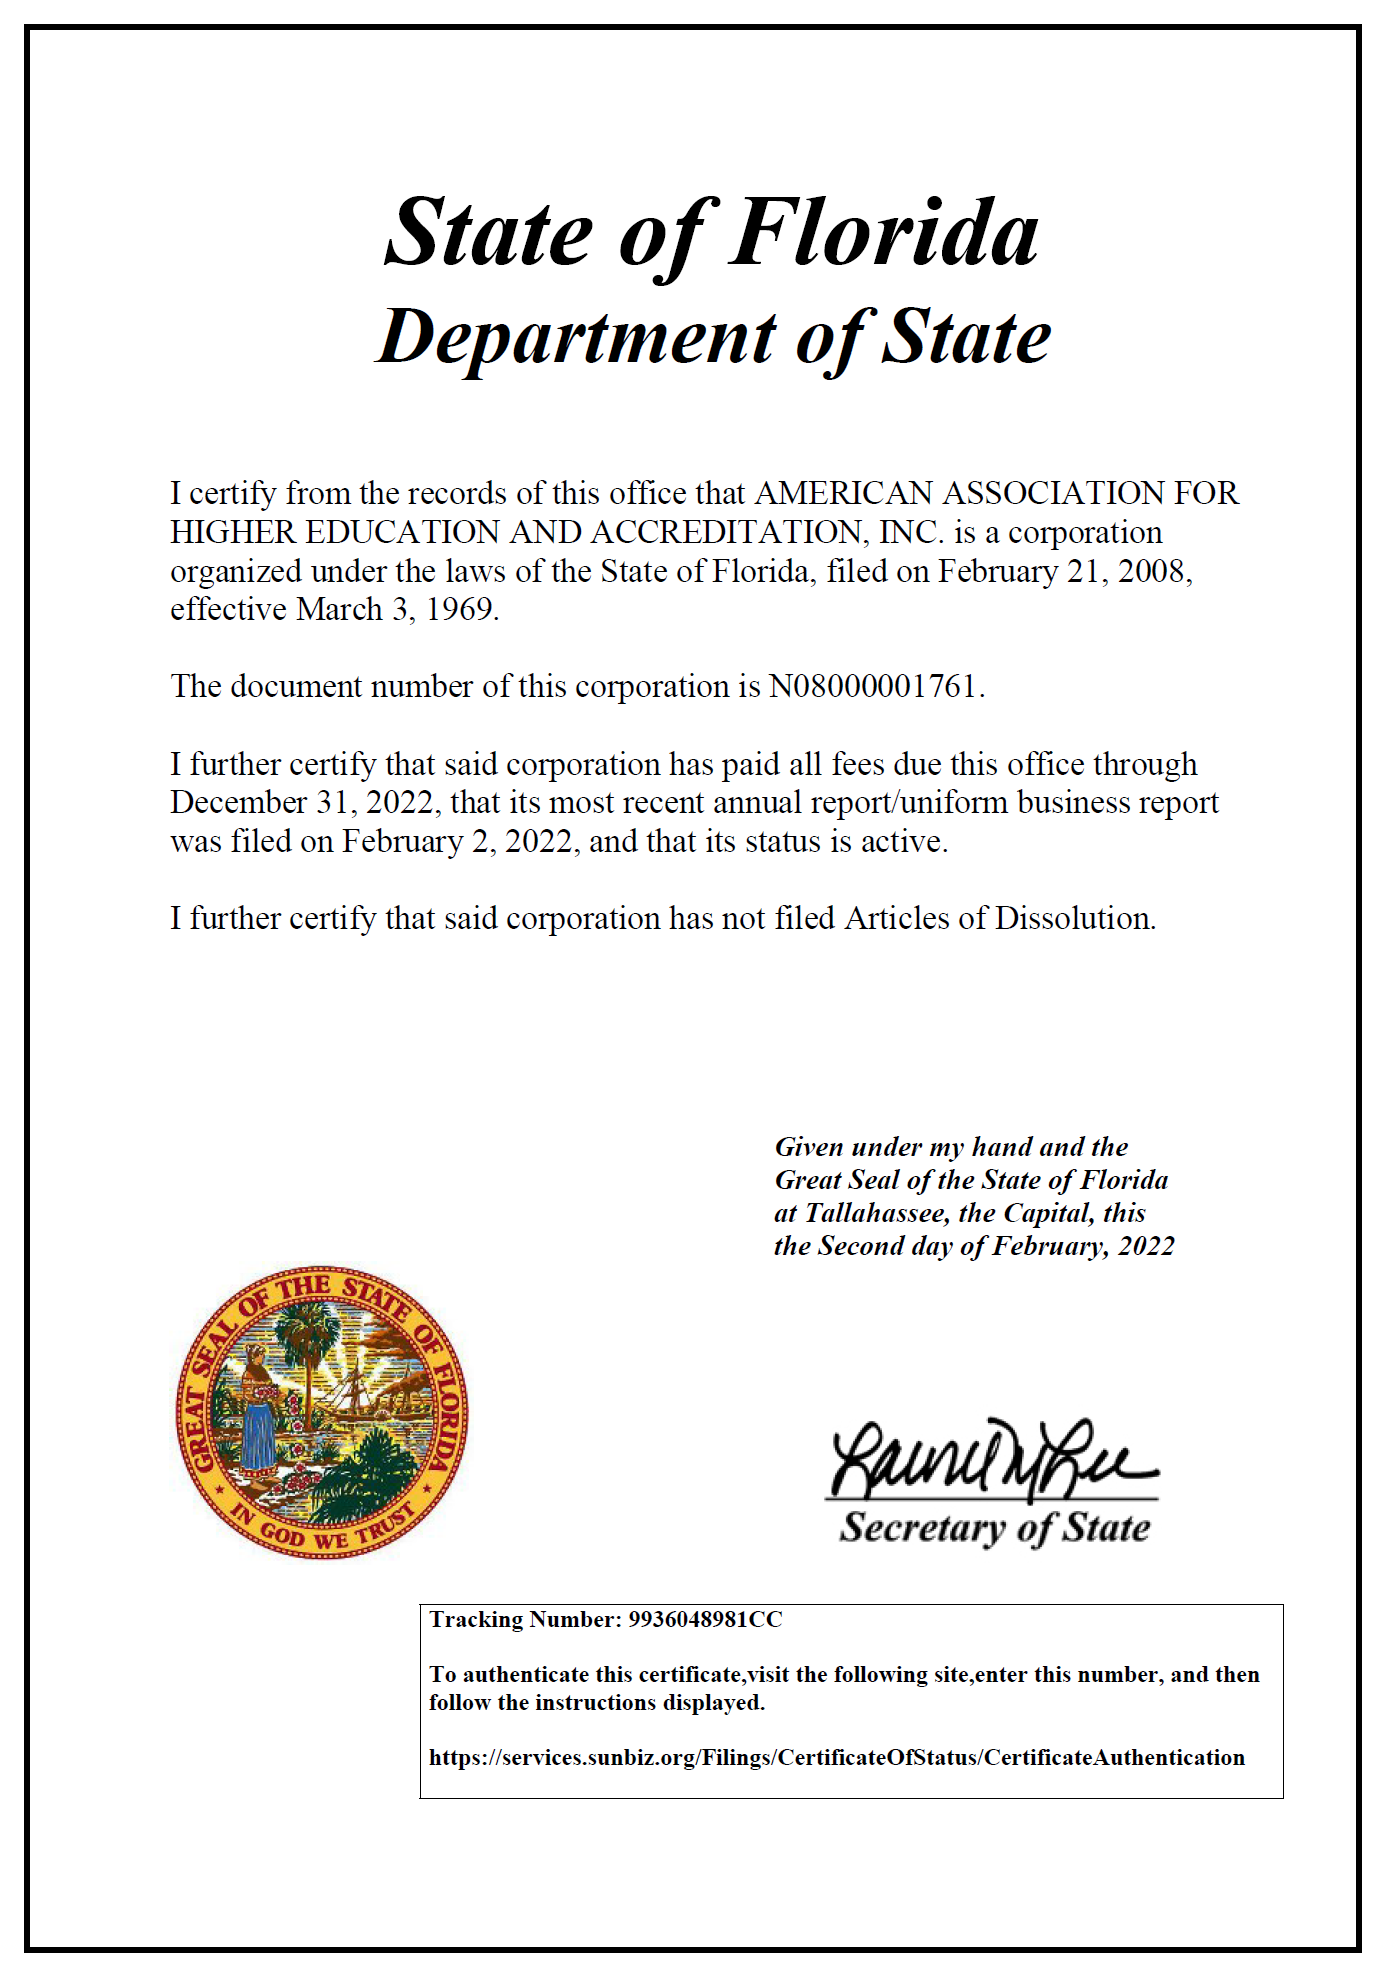 AAHEA Corporation Certification from Department of State of Florida